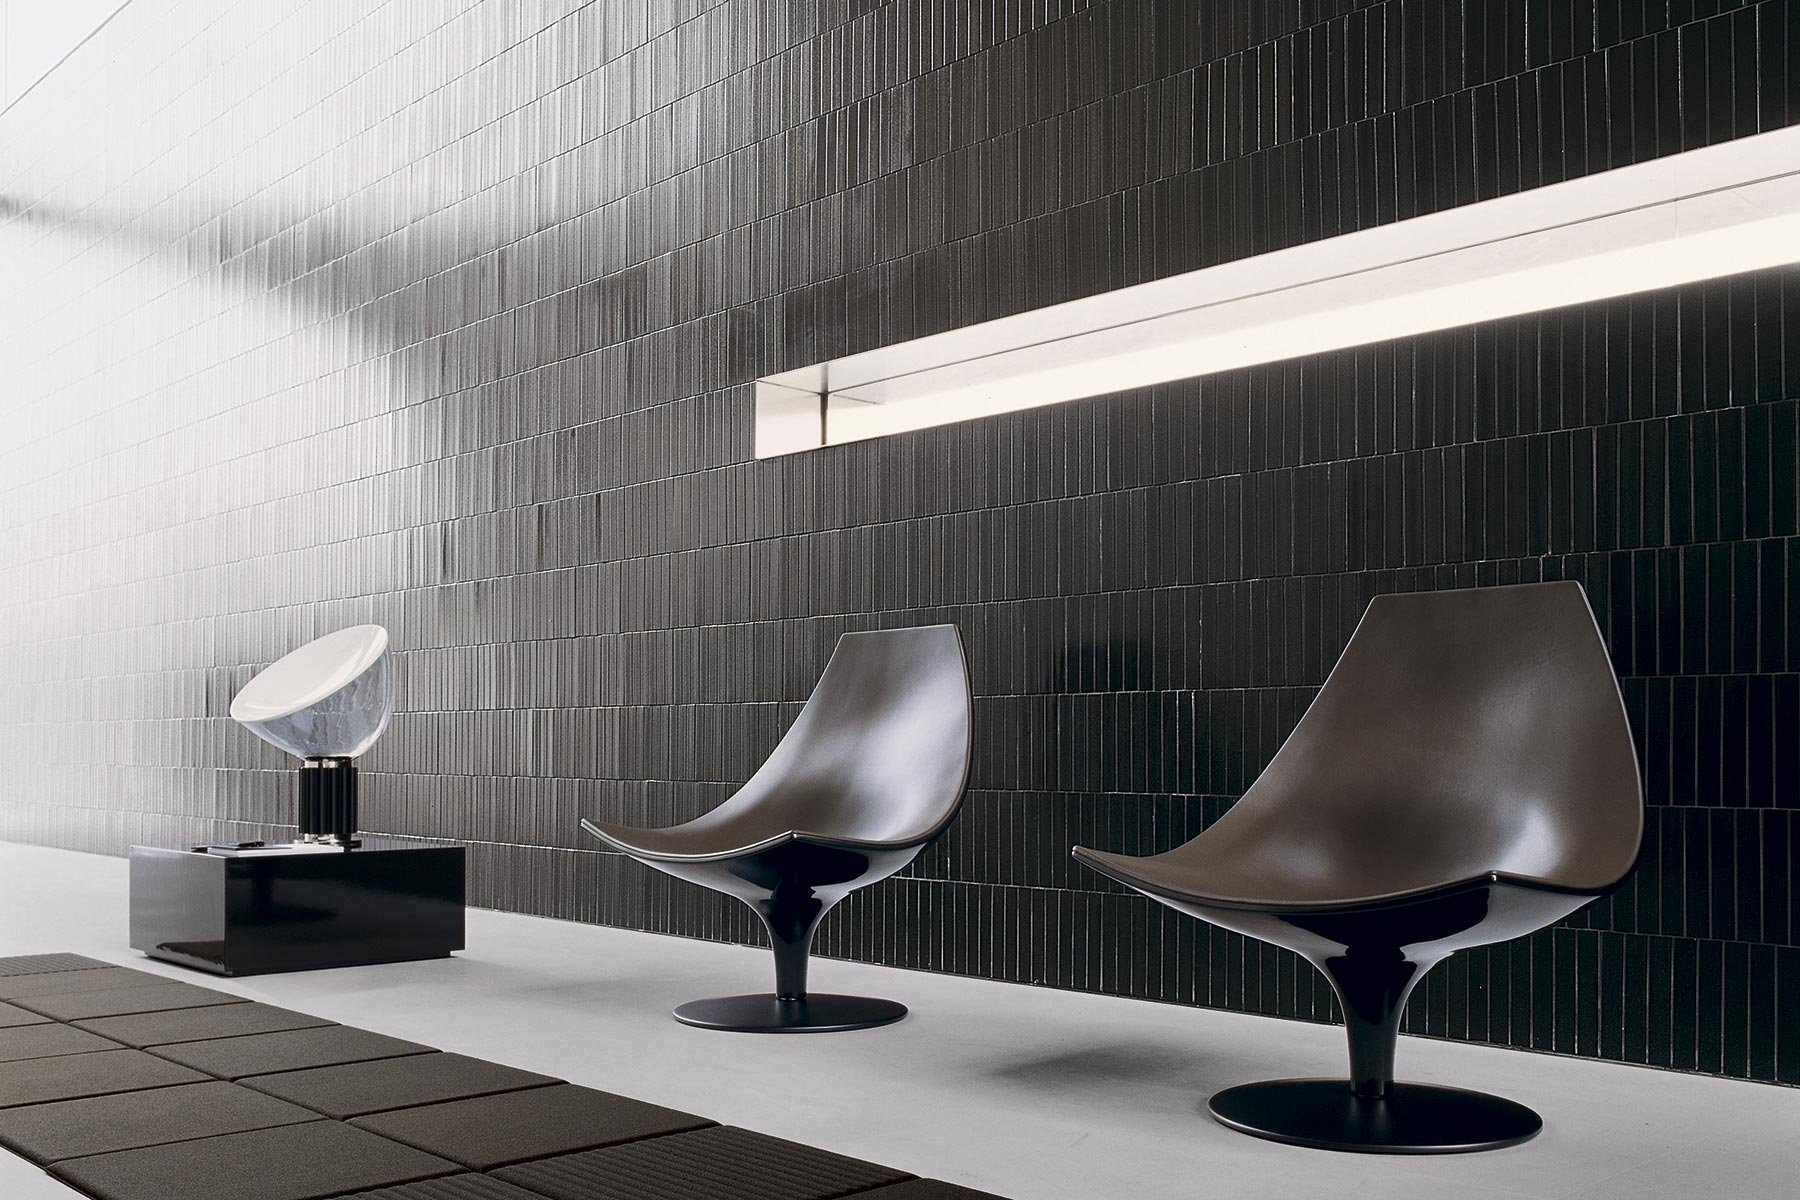 Moon Leather Chair lounge from Tacchini